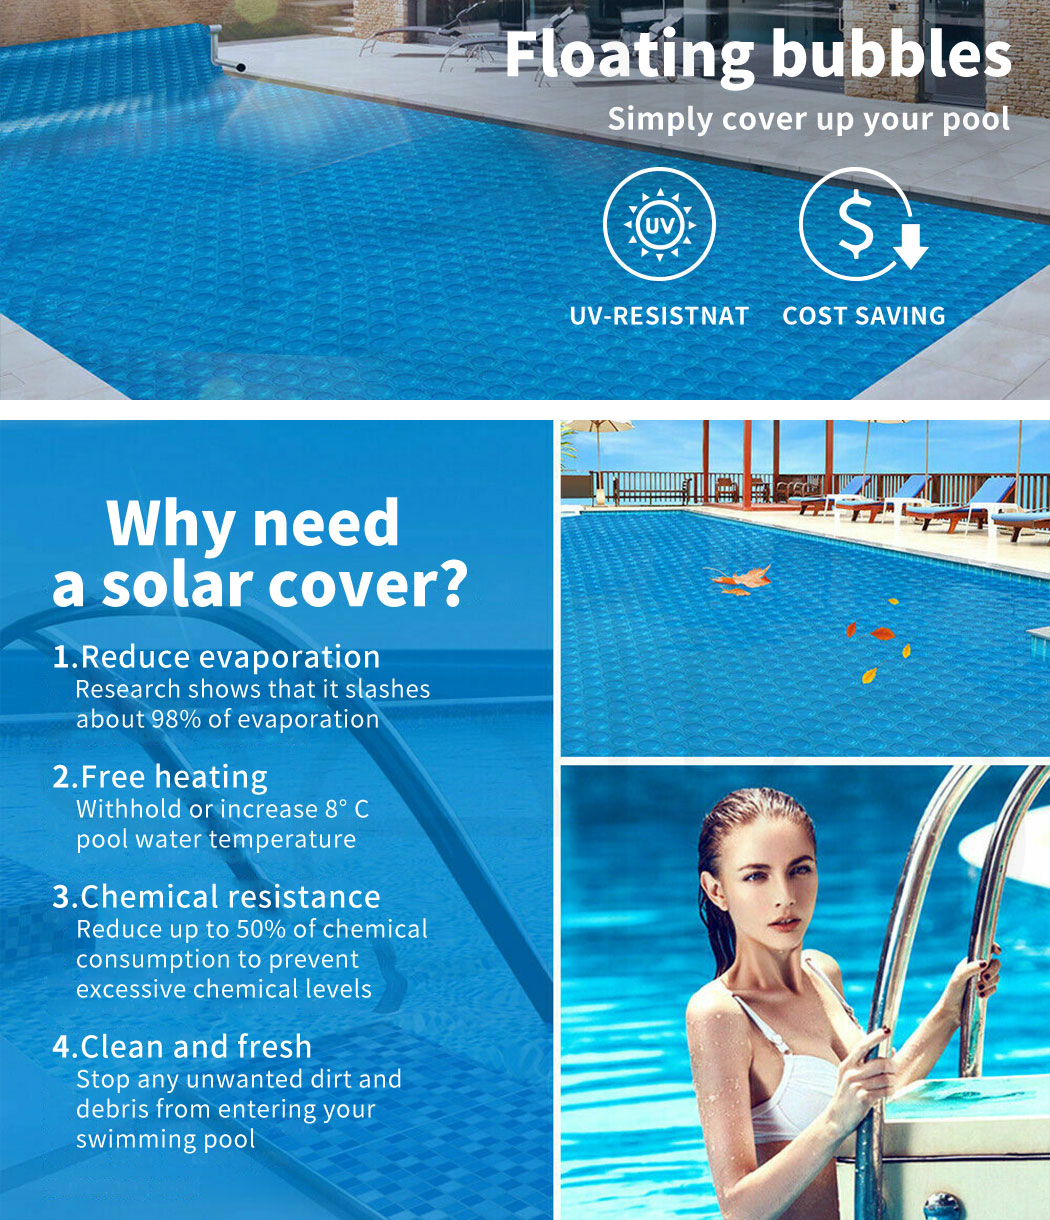 Solar-Swimming-Pool-Cover-400-500-Micron-Outdoor-Bubble-Blanket-Covers-7-Sizes thumbnail 48